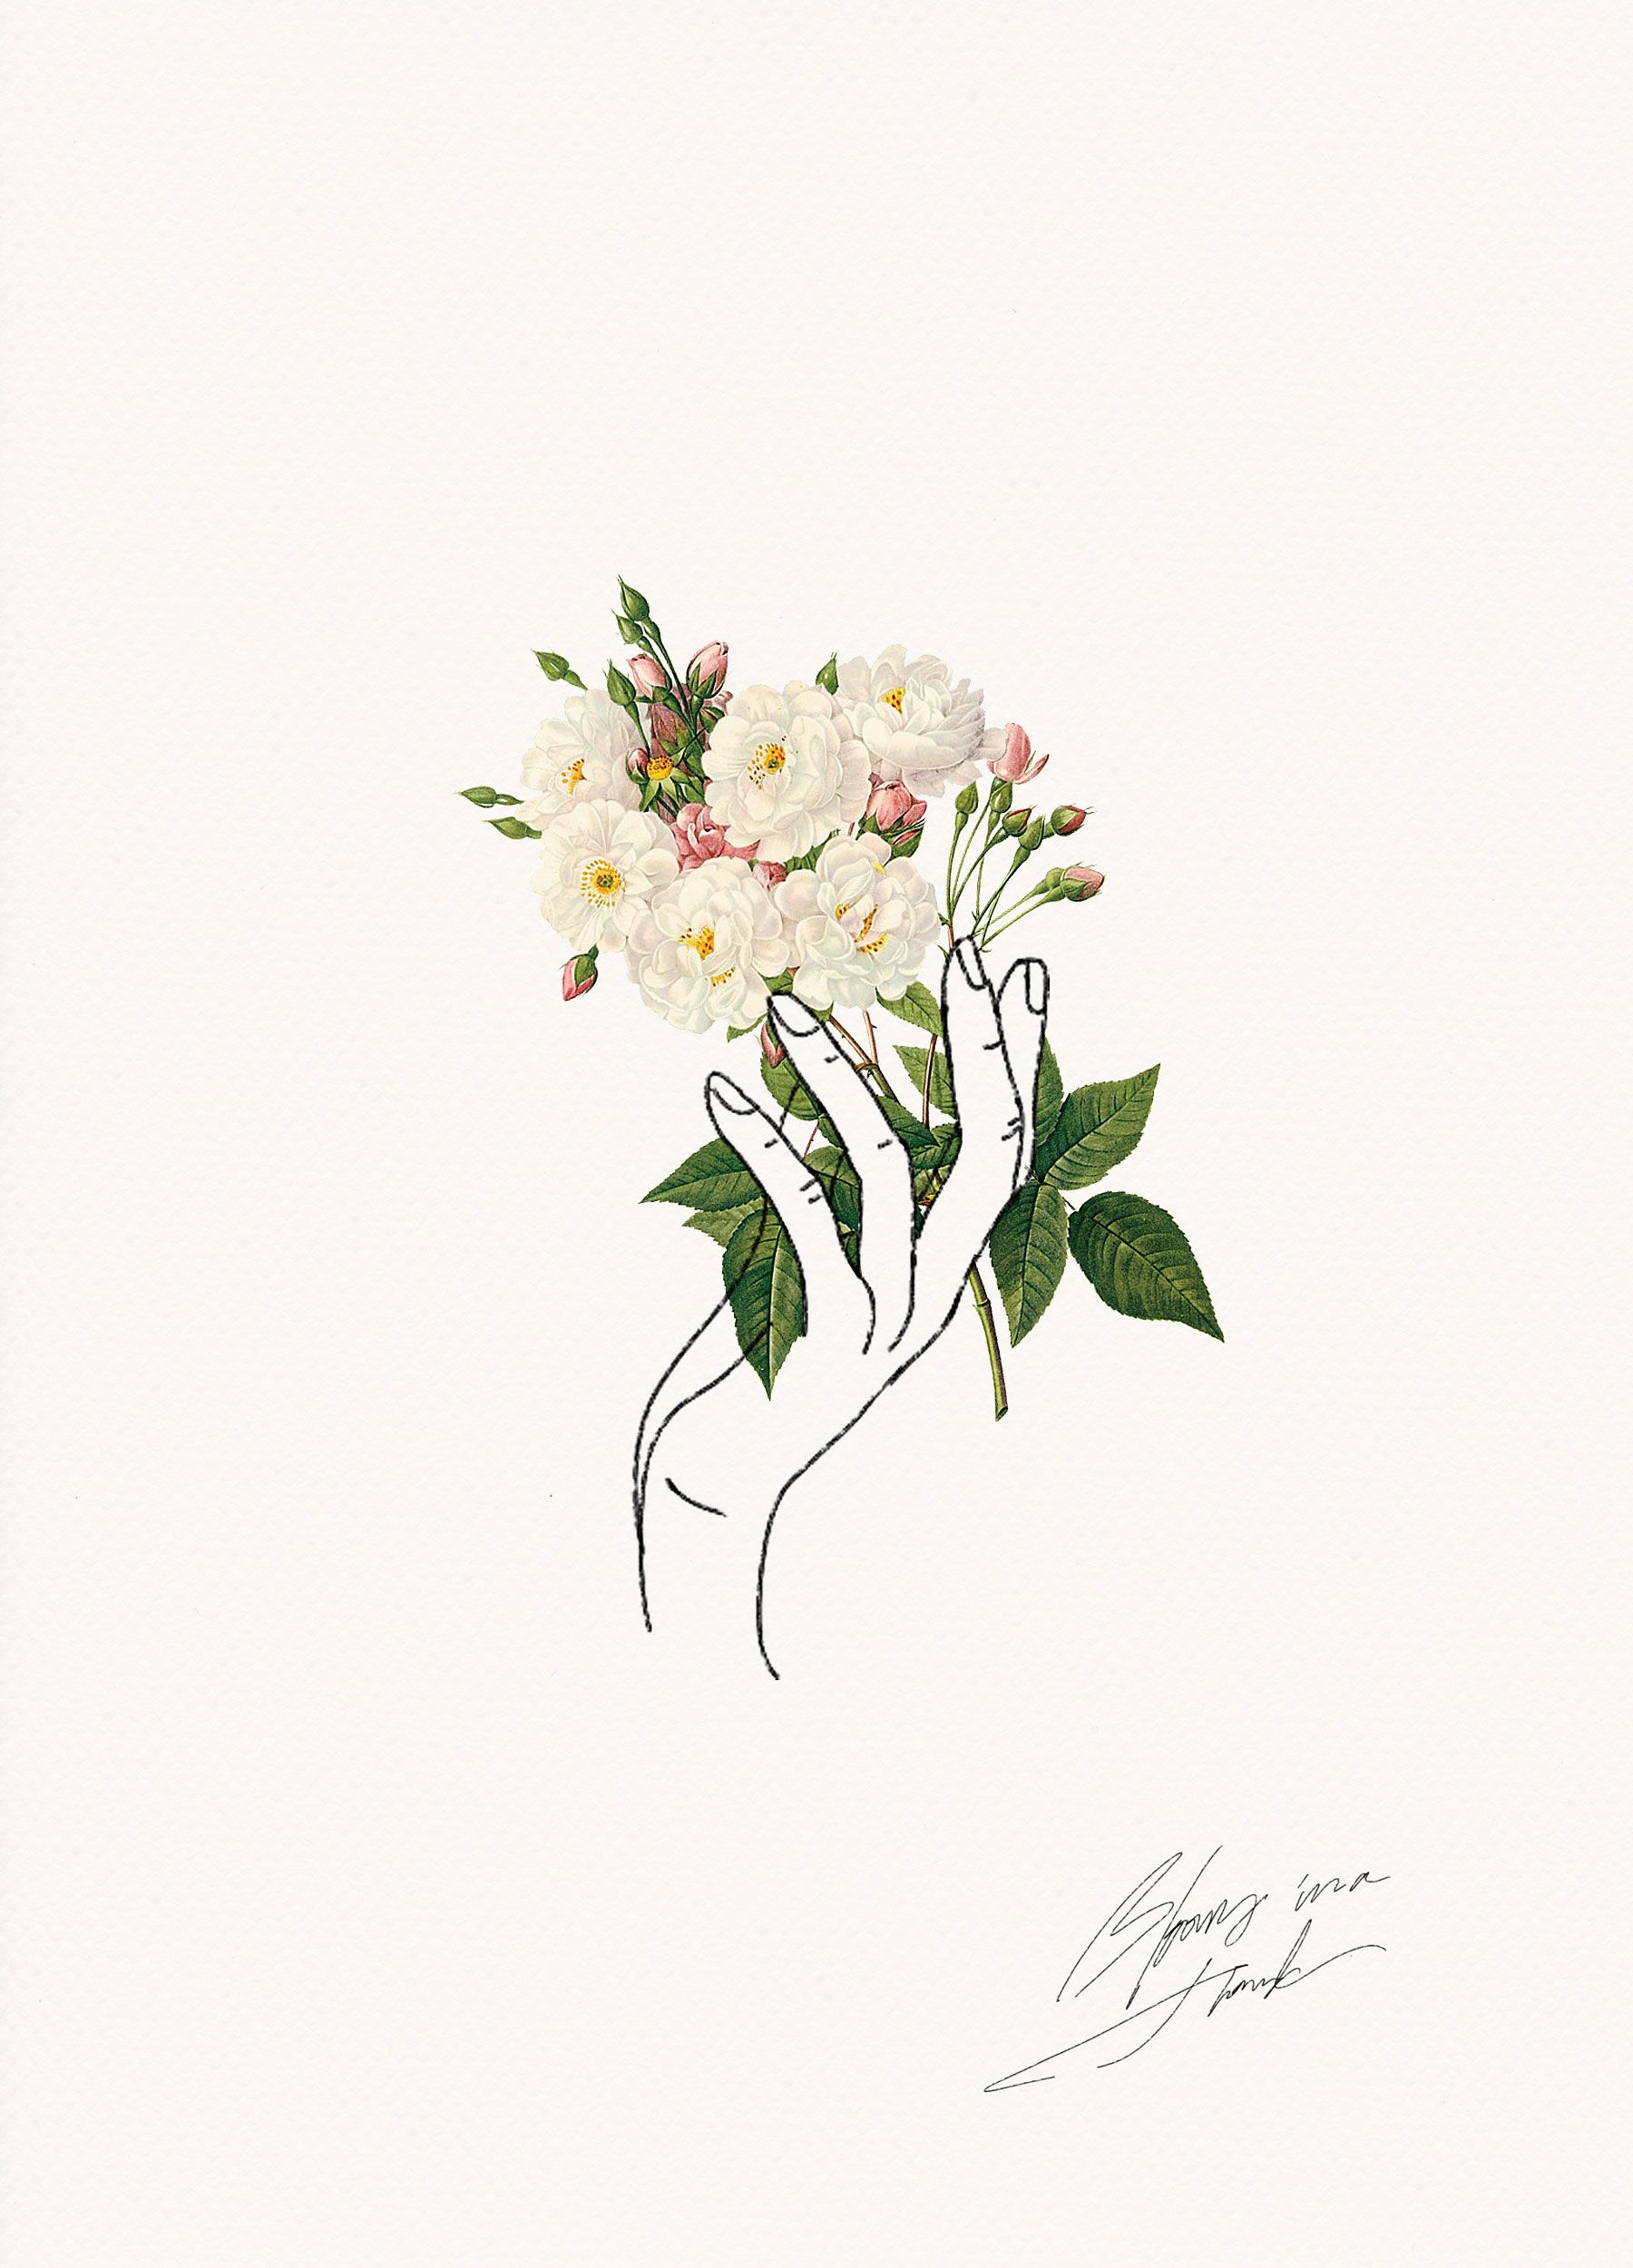 Cute Flower Line Drawing : Holding flowers illustrations and tattoo